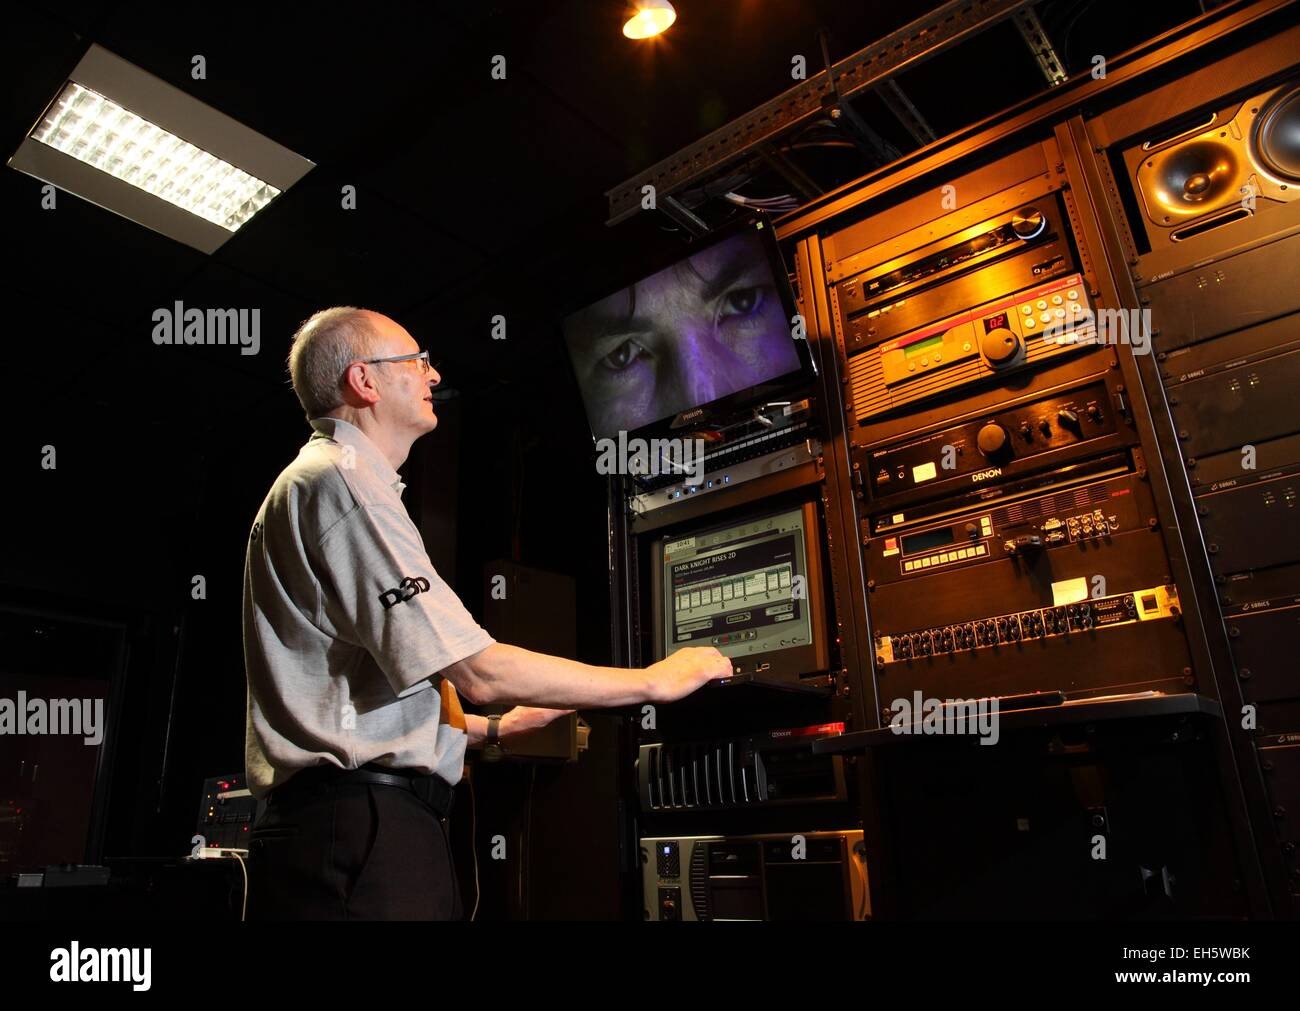 A man at the controls of a cinema projection room - Stock Image